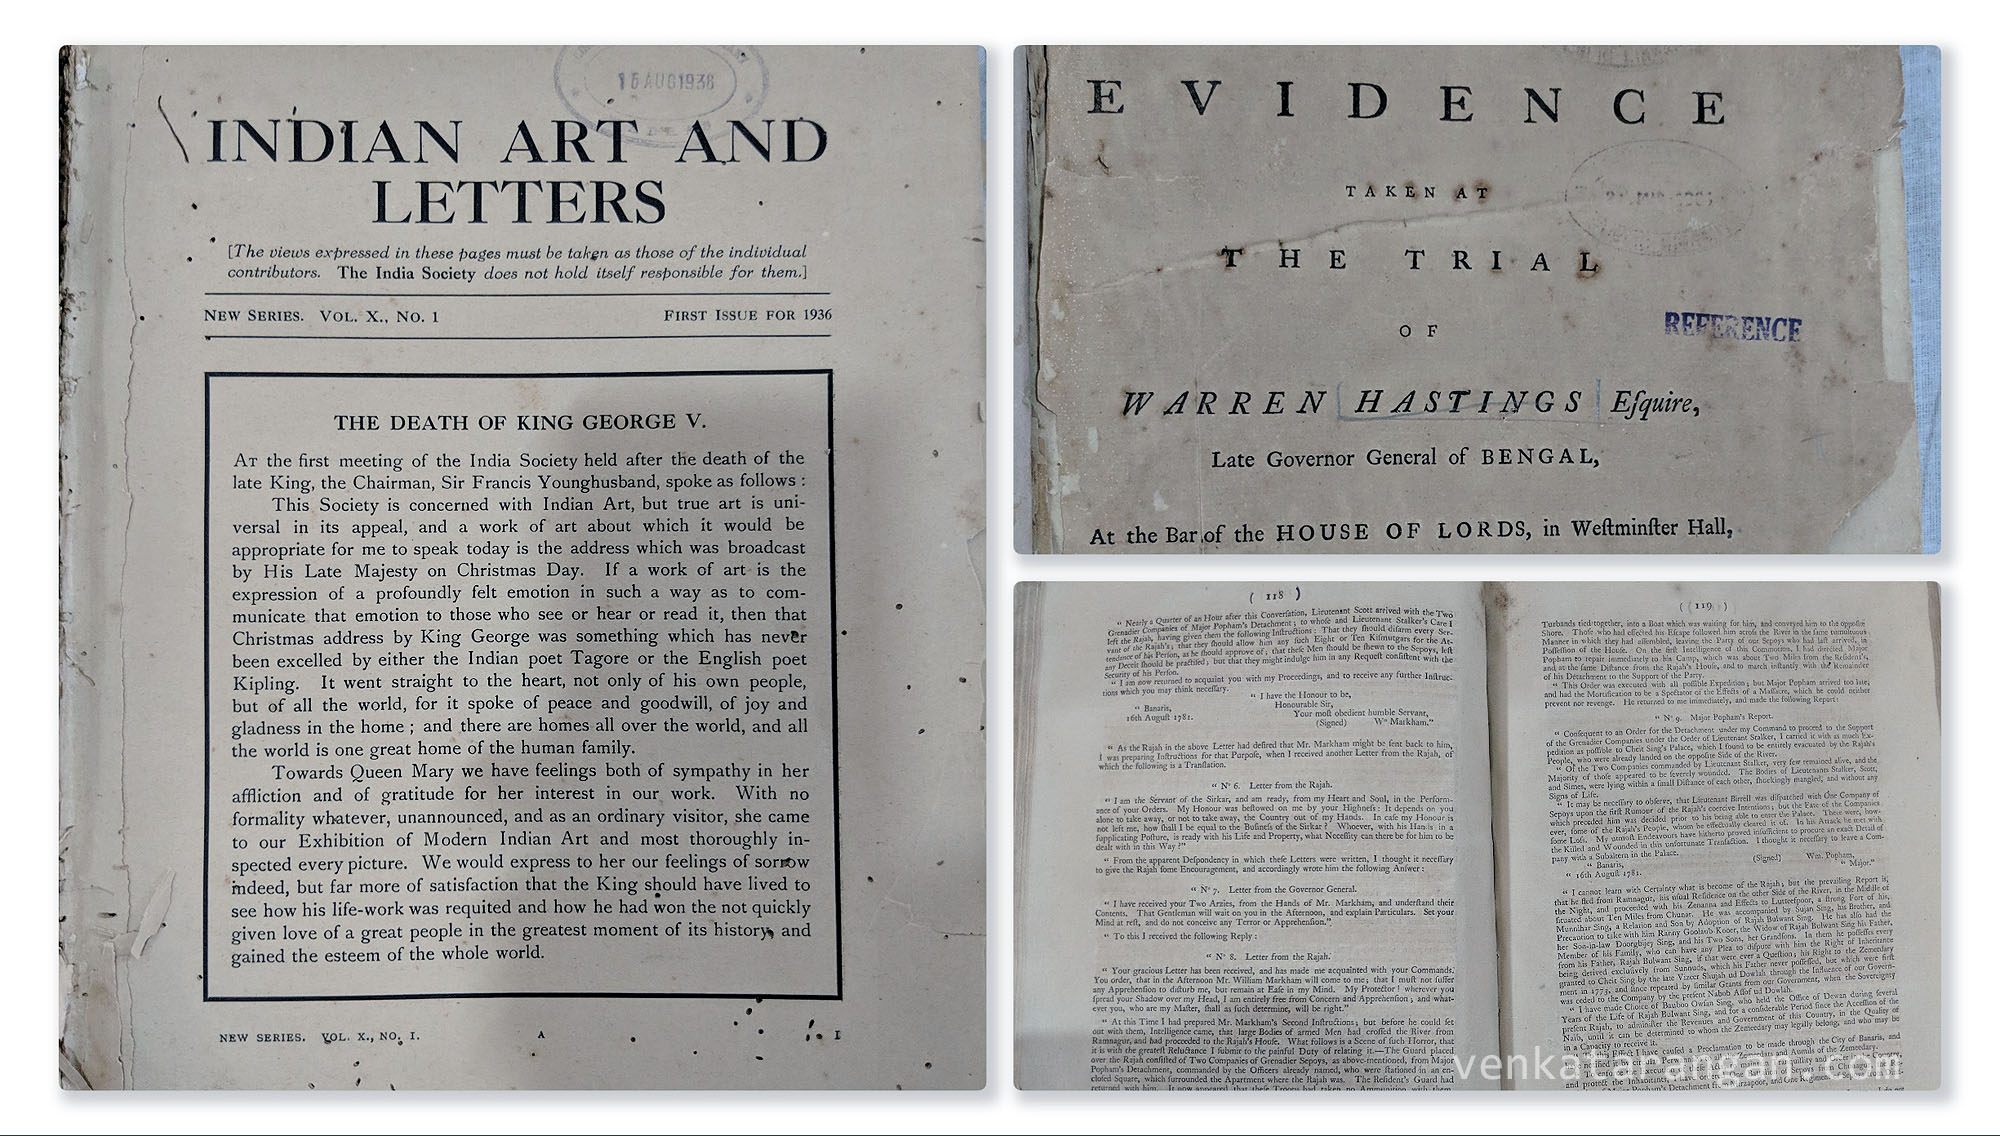 "Indian Art and Letters magazine of 1936 writing about ""The Death of King George V"". Minutes of the evidence of the trial of Warren Hastings, the Governor General of Bengal at the bar of the house of lords, with library seal from 1905."